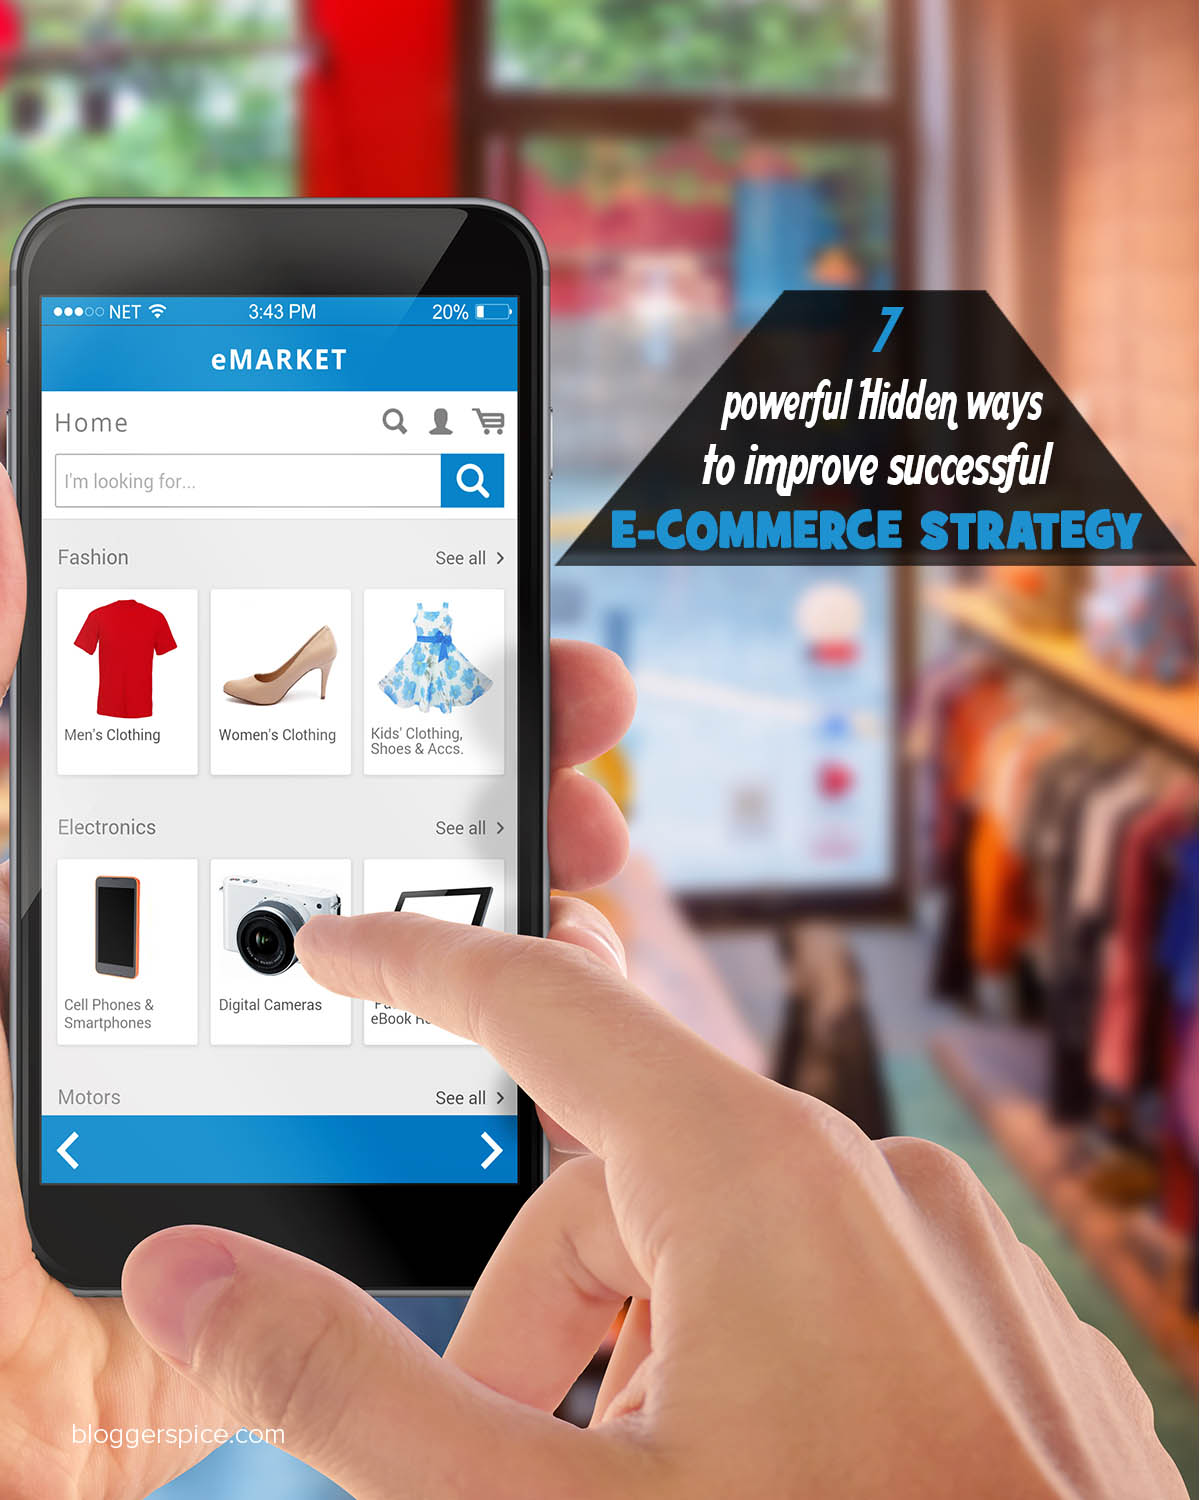 7 powerful Hidden ways to improve successful E-commerce Strategy